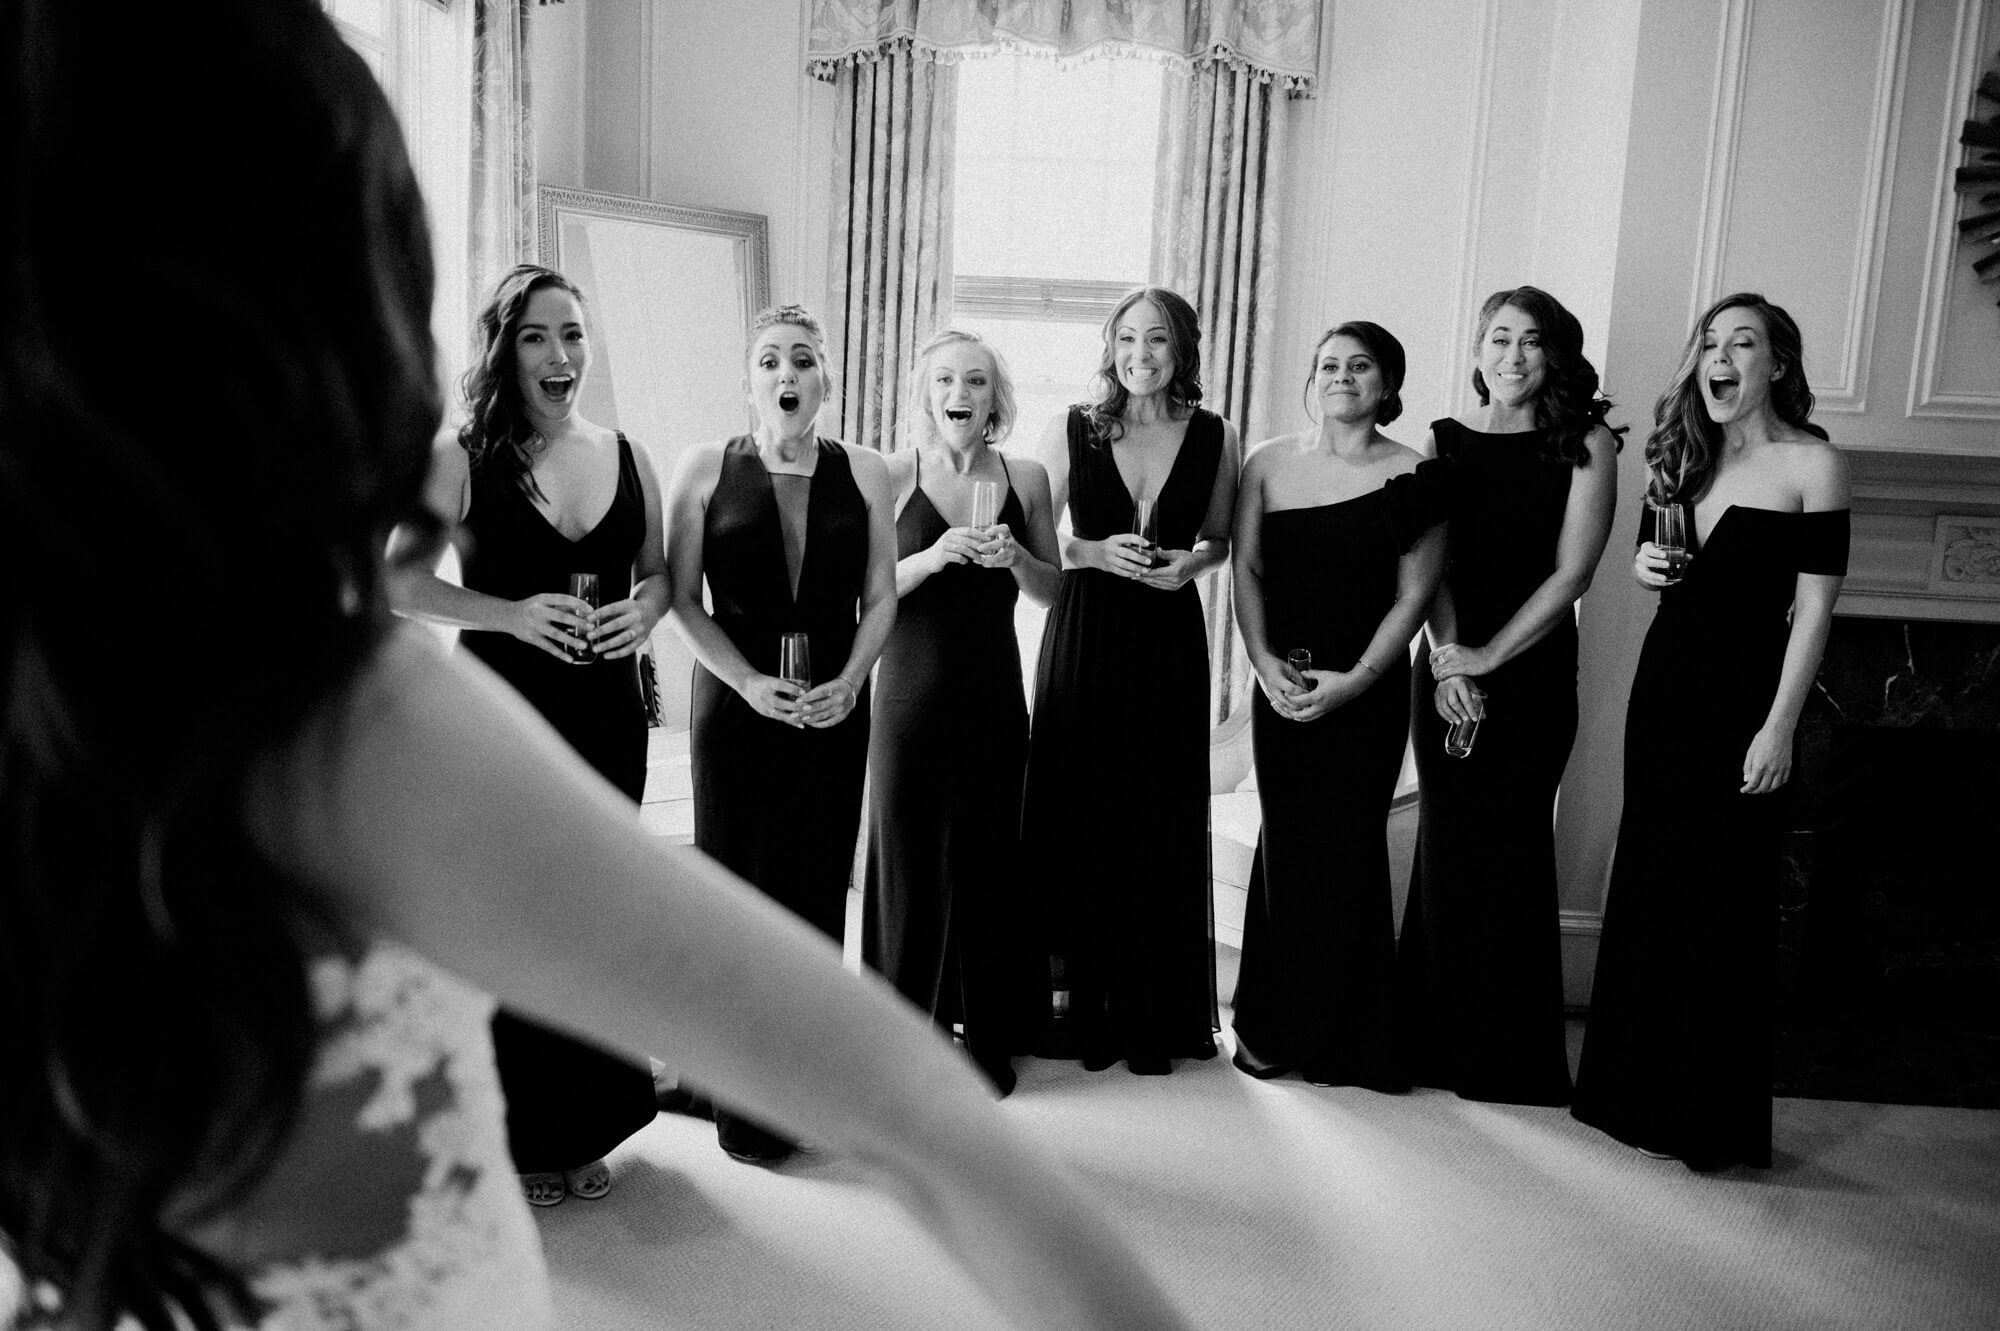 bridesmaids react to seeing bride in wedding gown